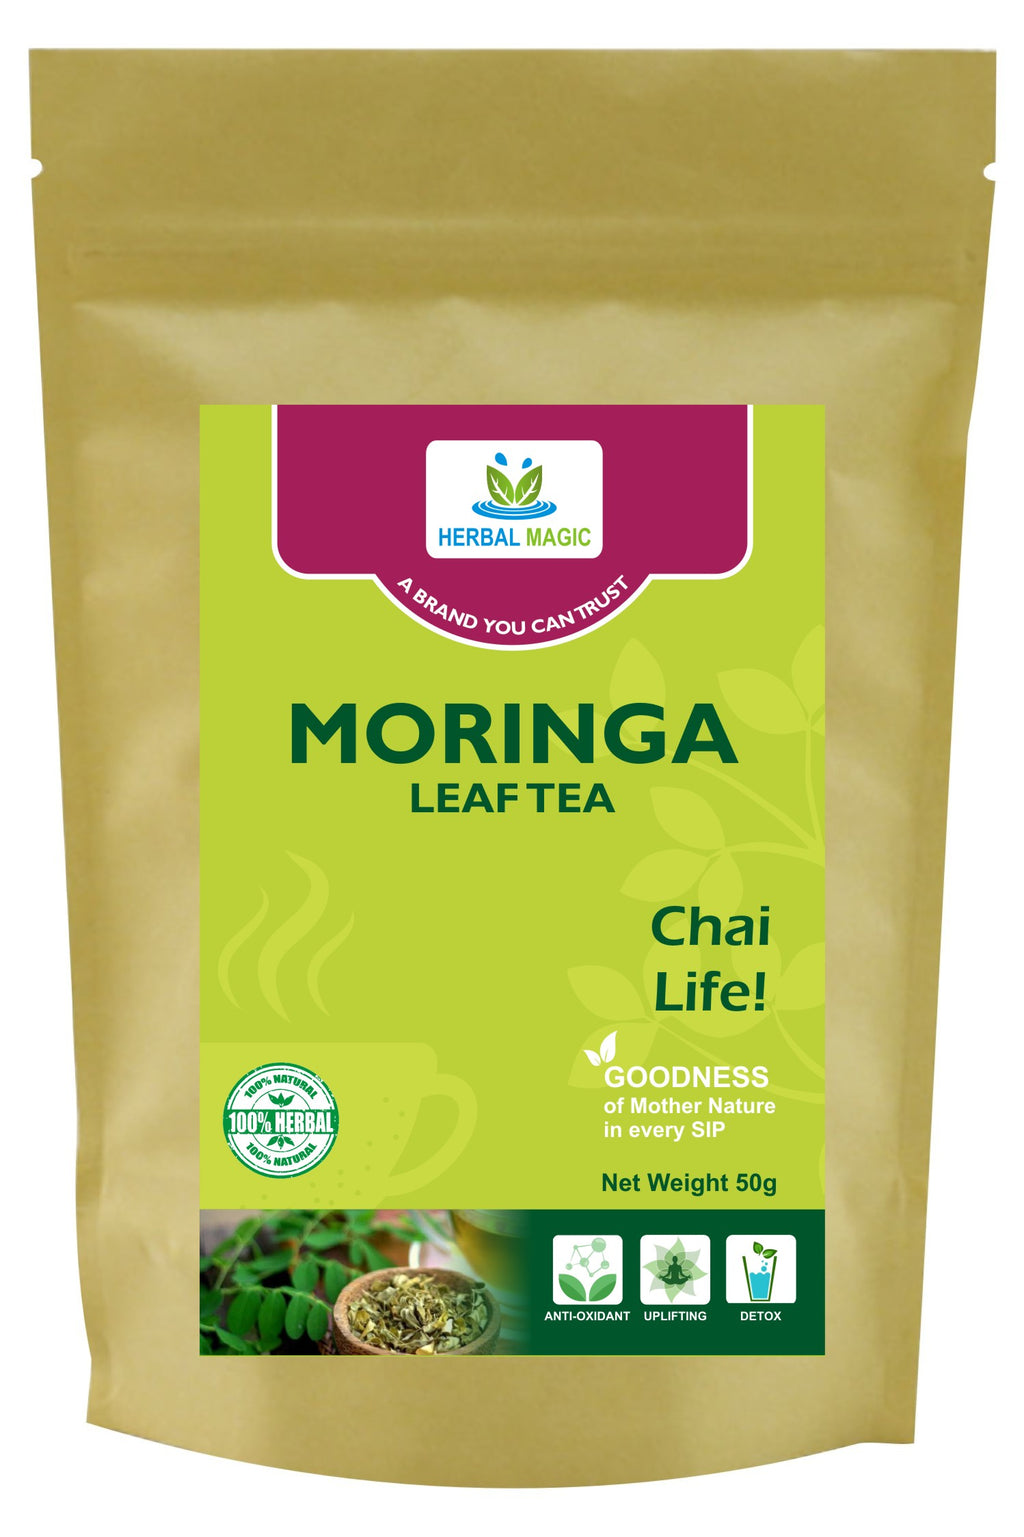 Herbal Magic Moringa Leaves Tea - Pure Antioxidant Superfood - Herbal Moringa Leaves - Non-GMO, Vegan Free, Gluten Free, Tea, 50g